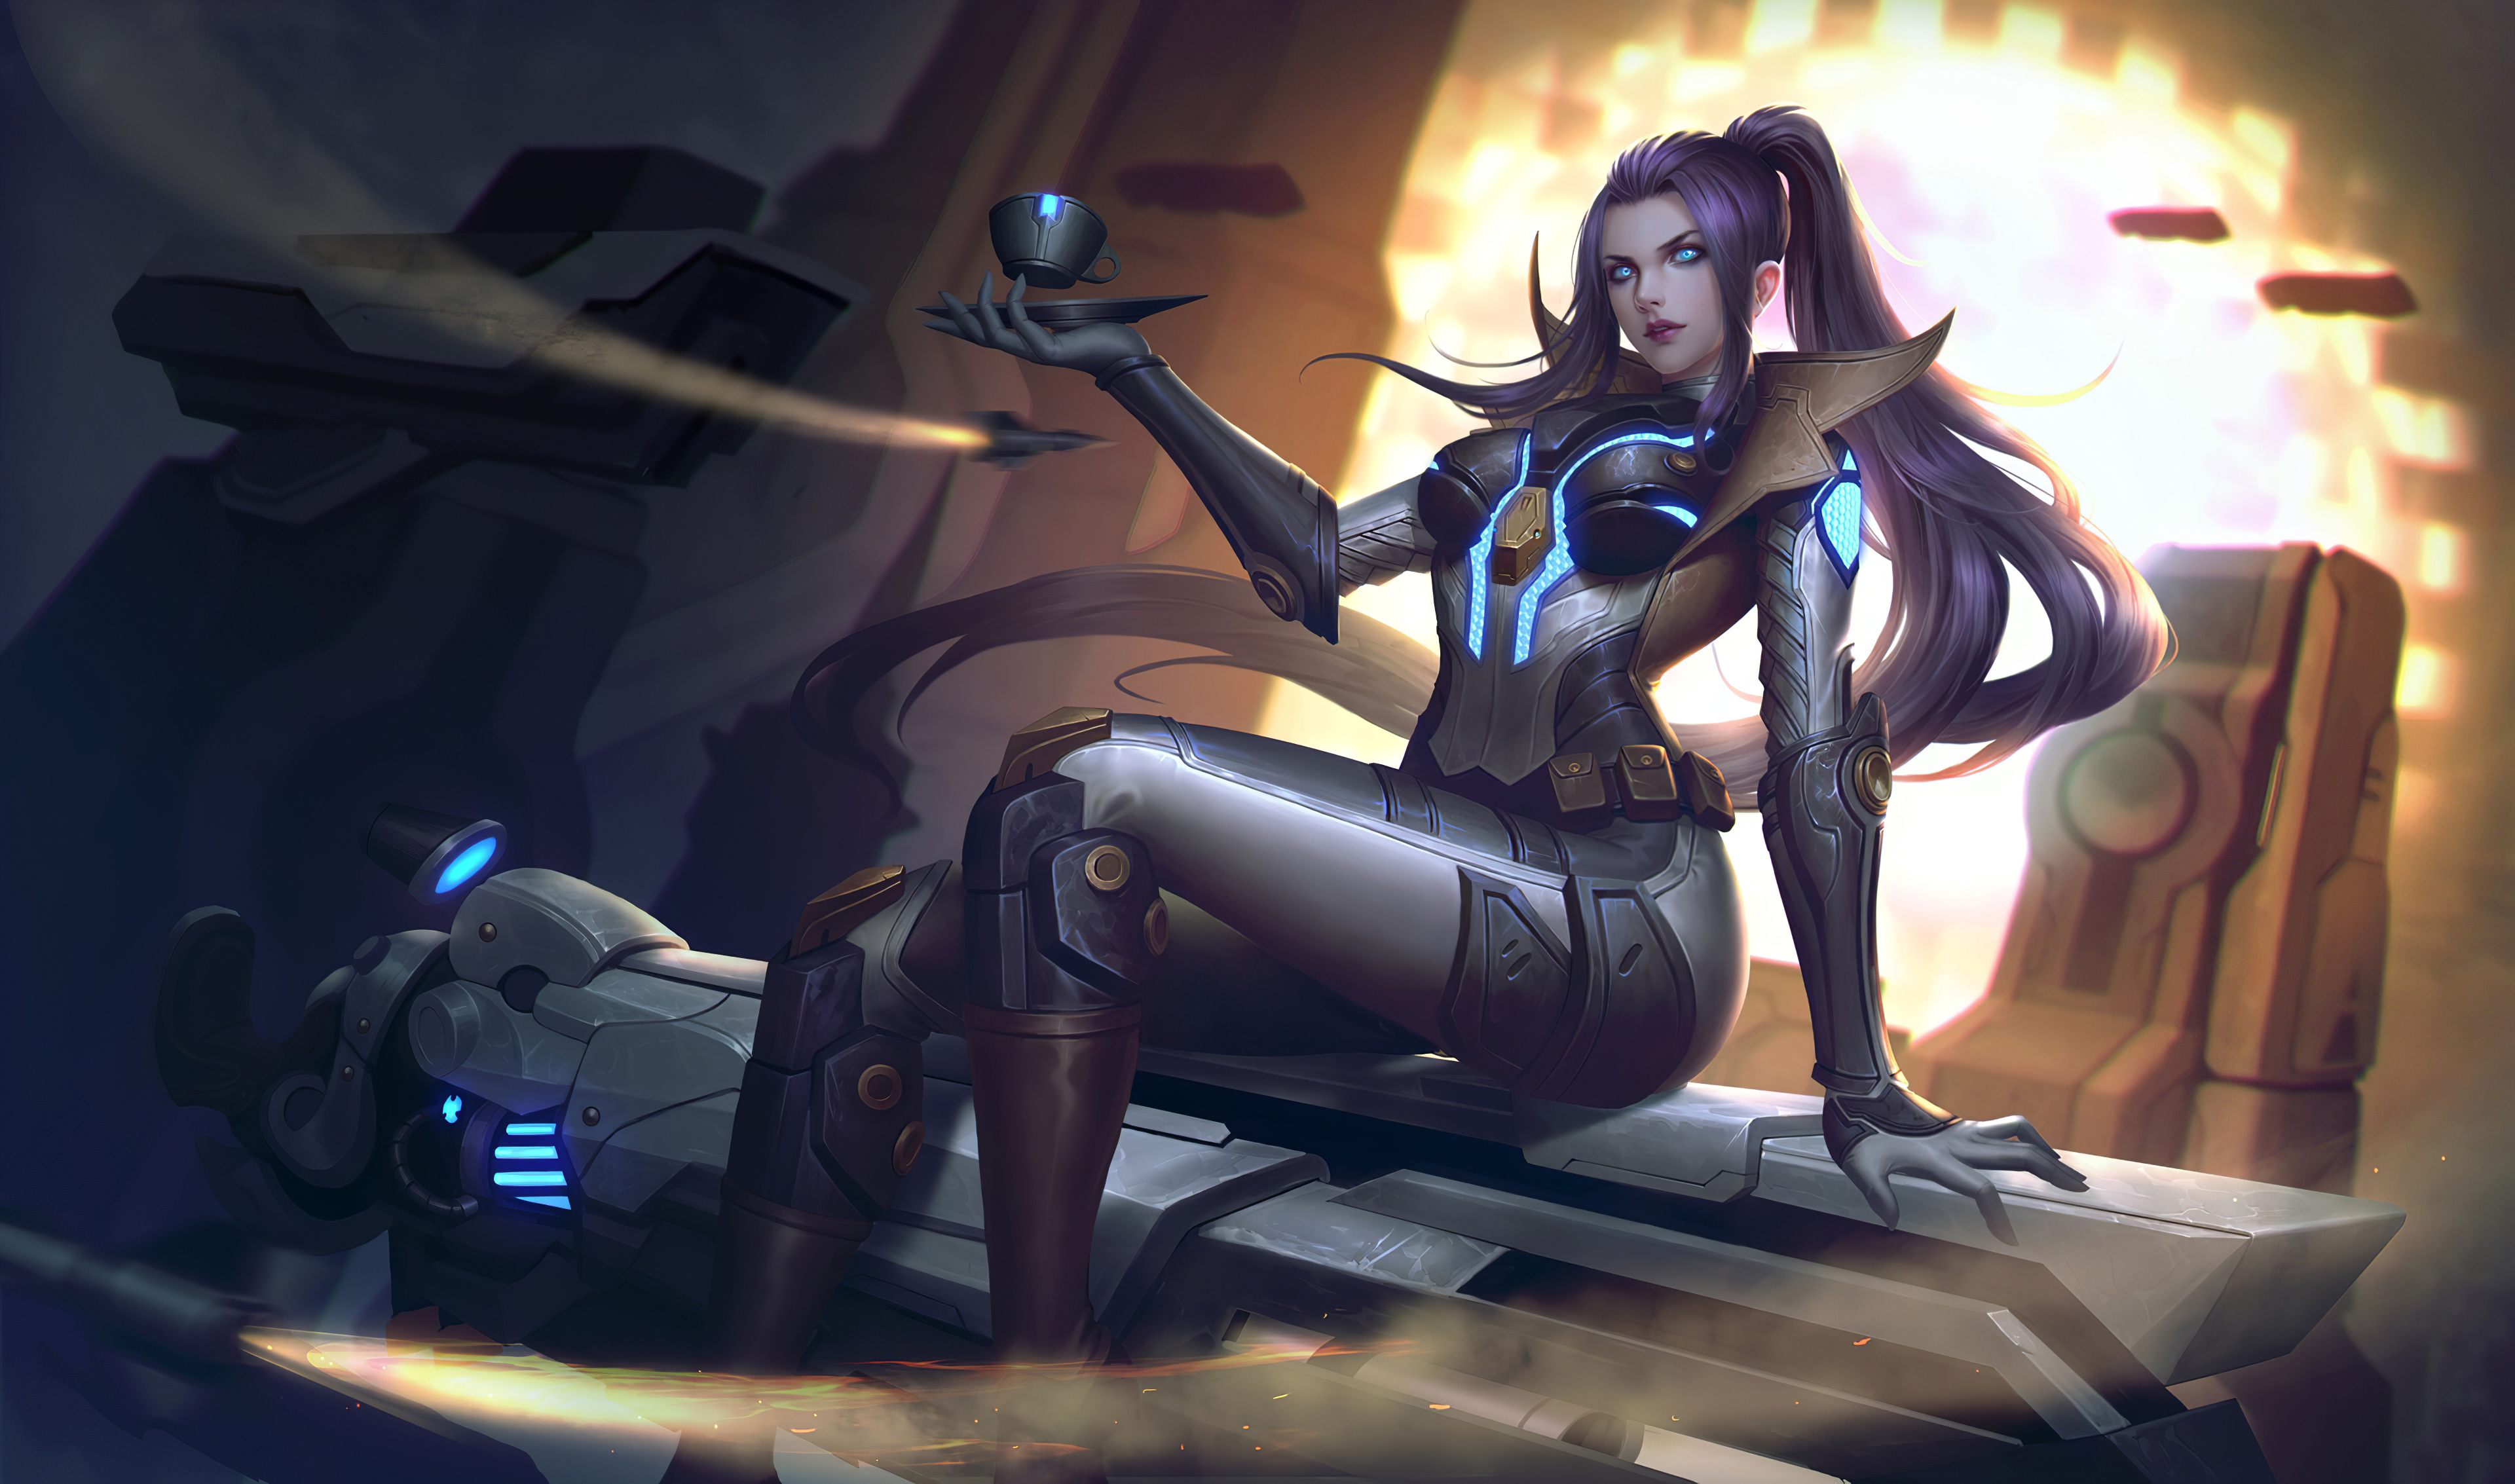 Caitlyn Lol Art 4k Hd Games 4k Wallpapers Images Backgrounds